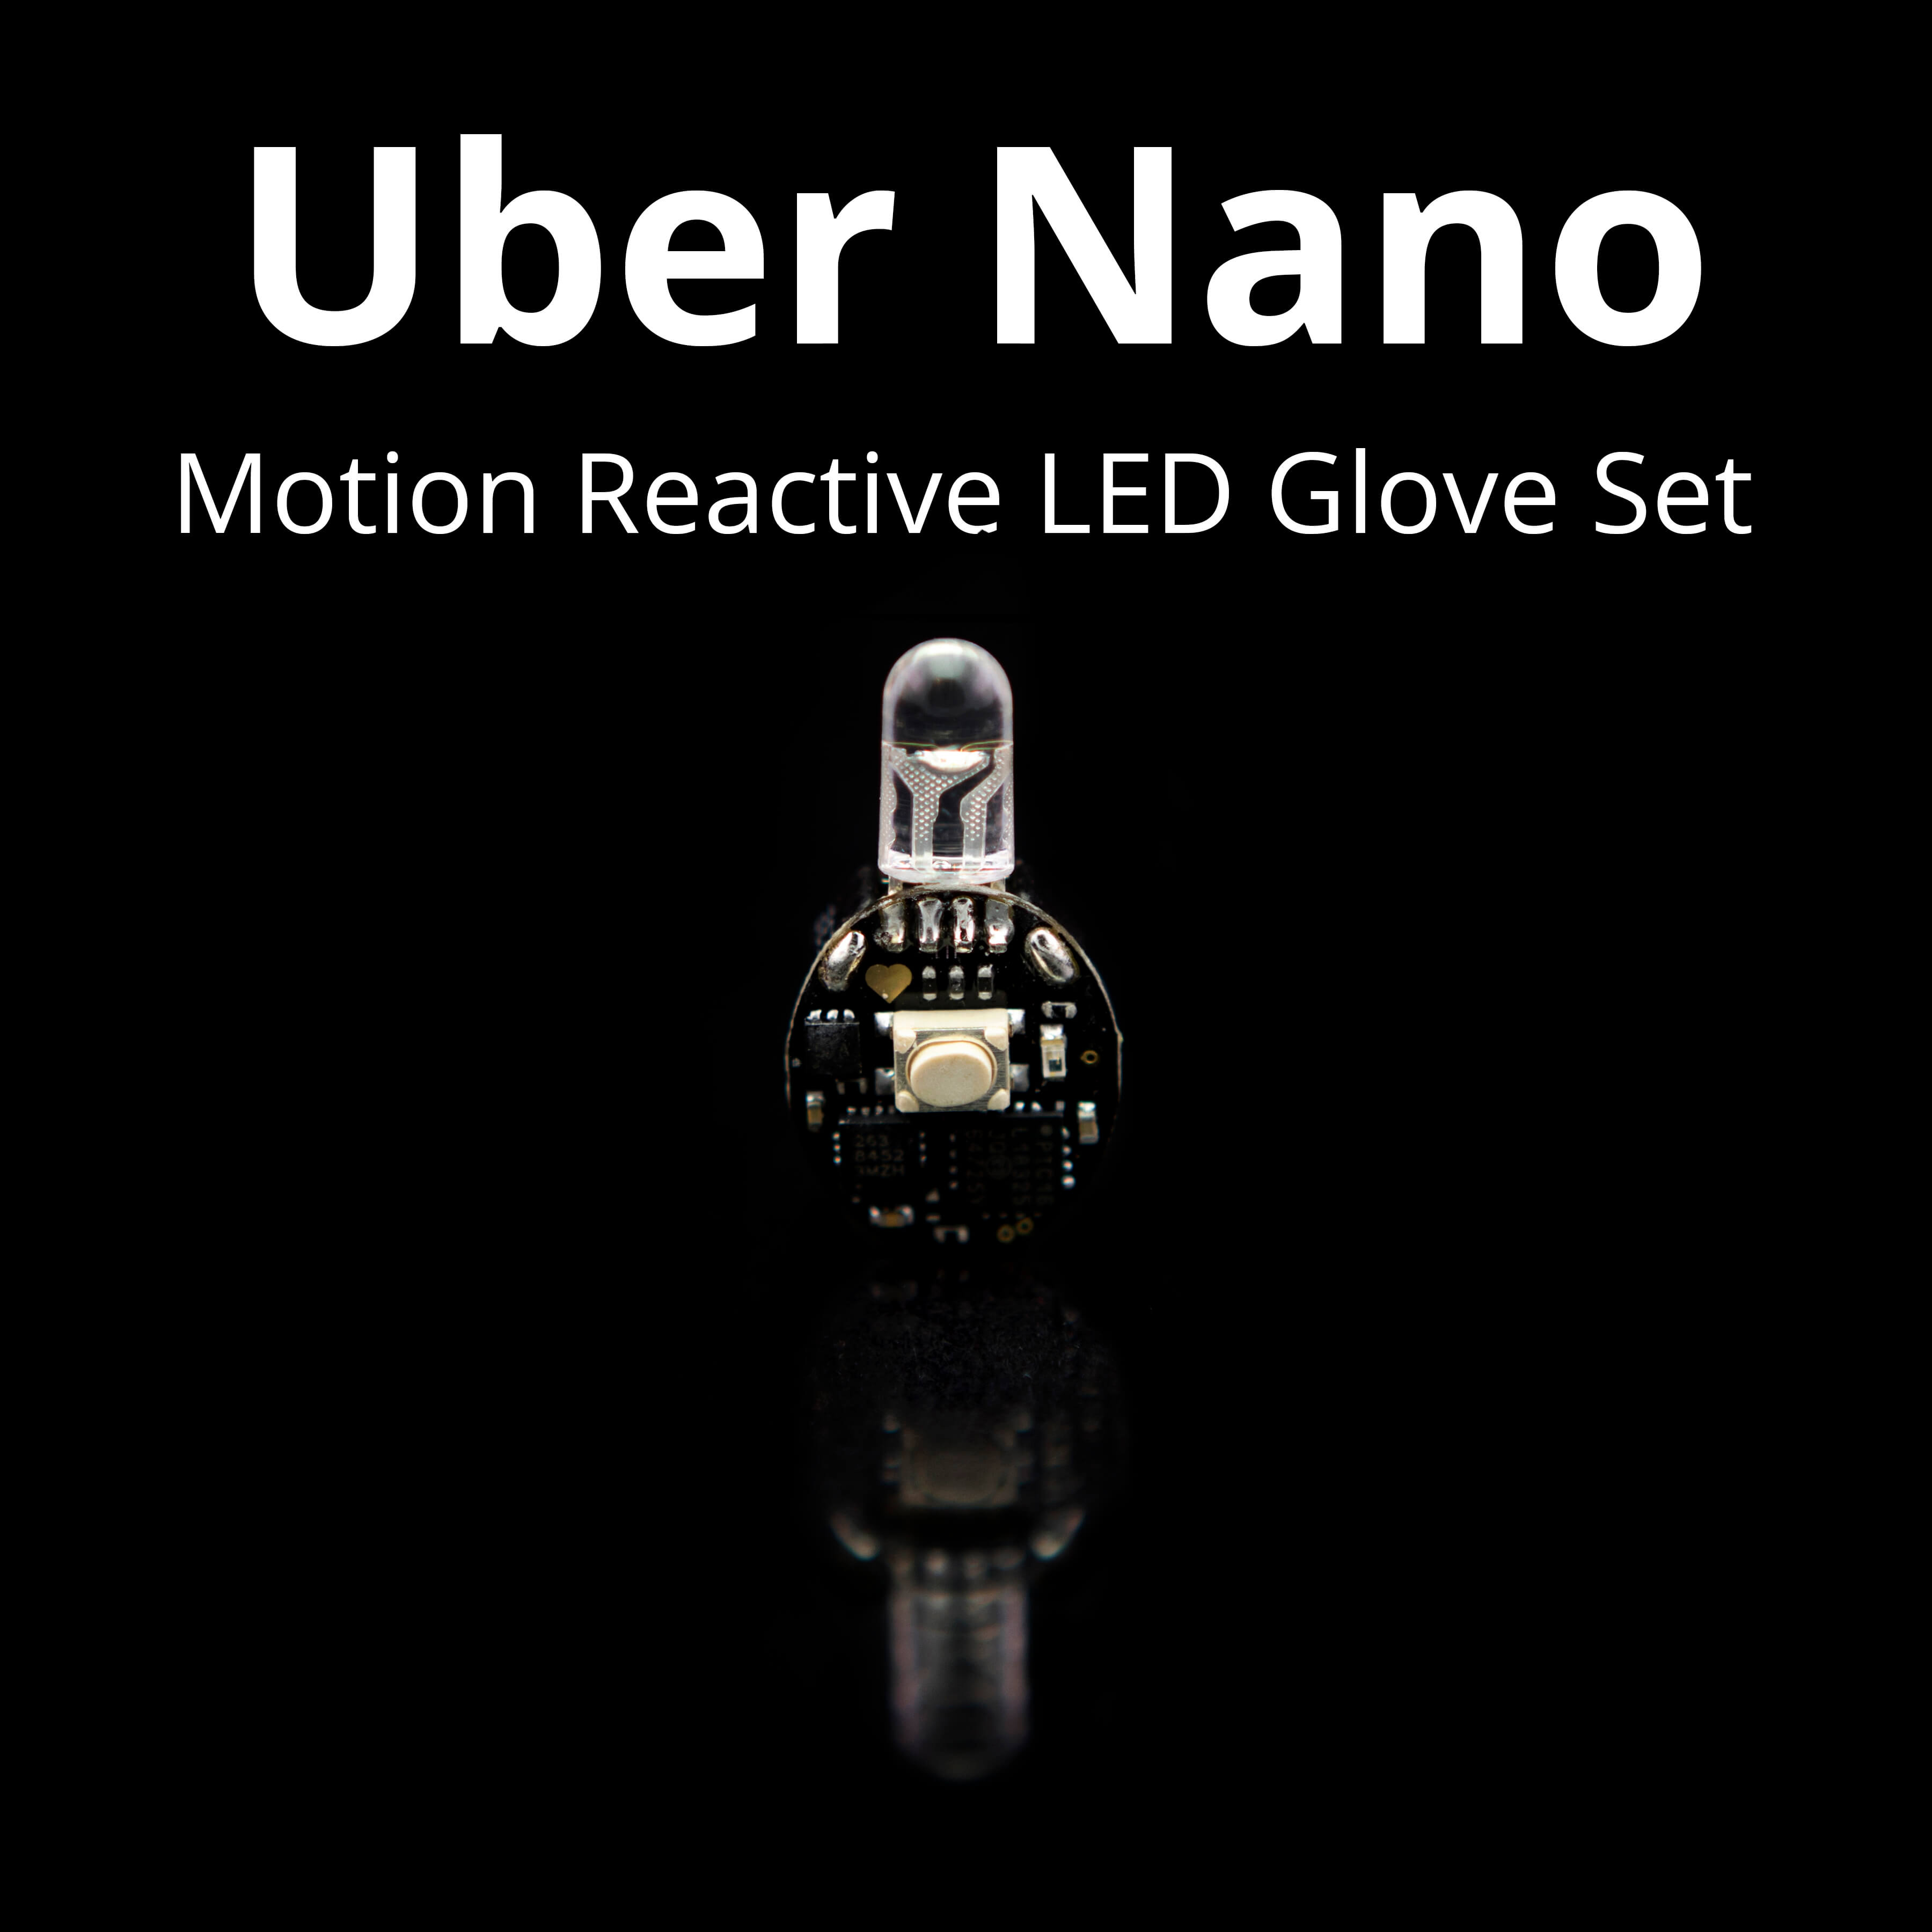 Uber Nano Motion Reactive LED Glove Set